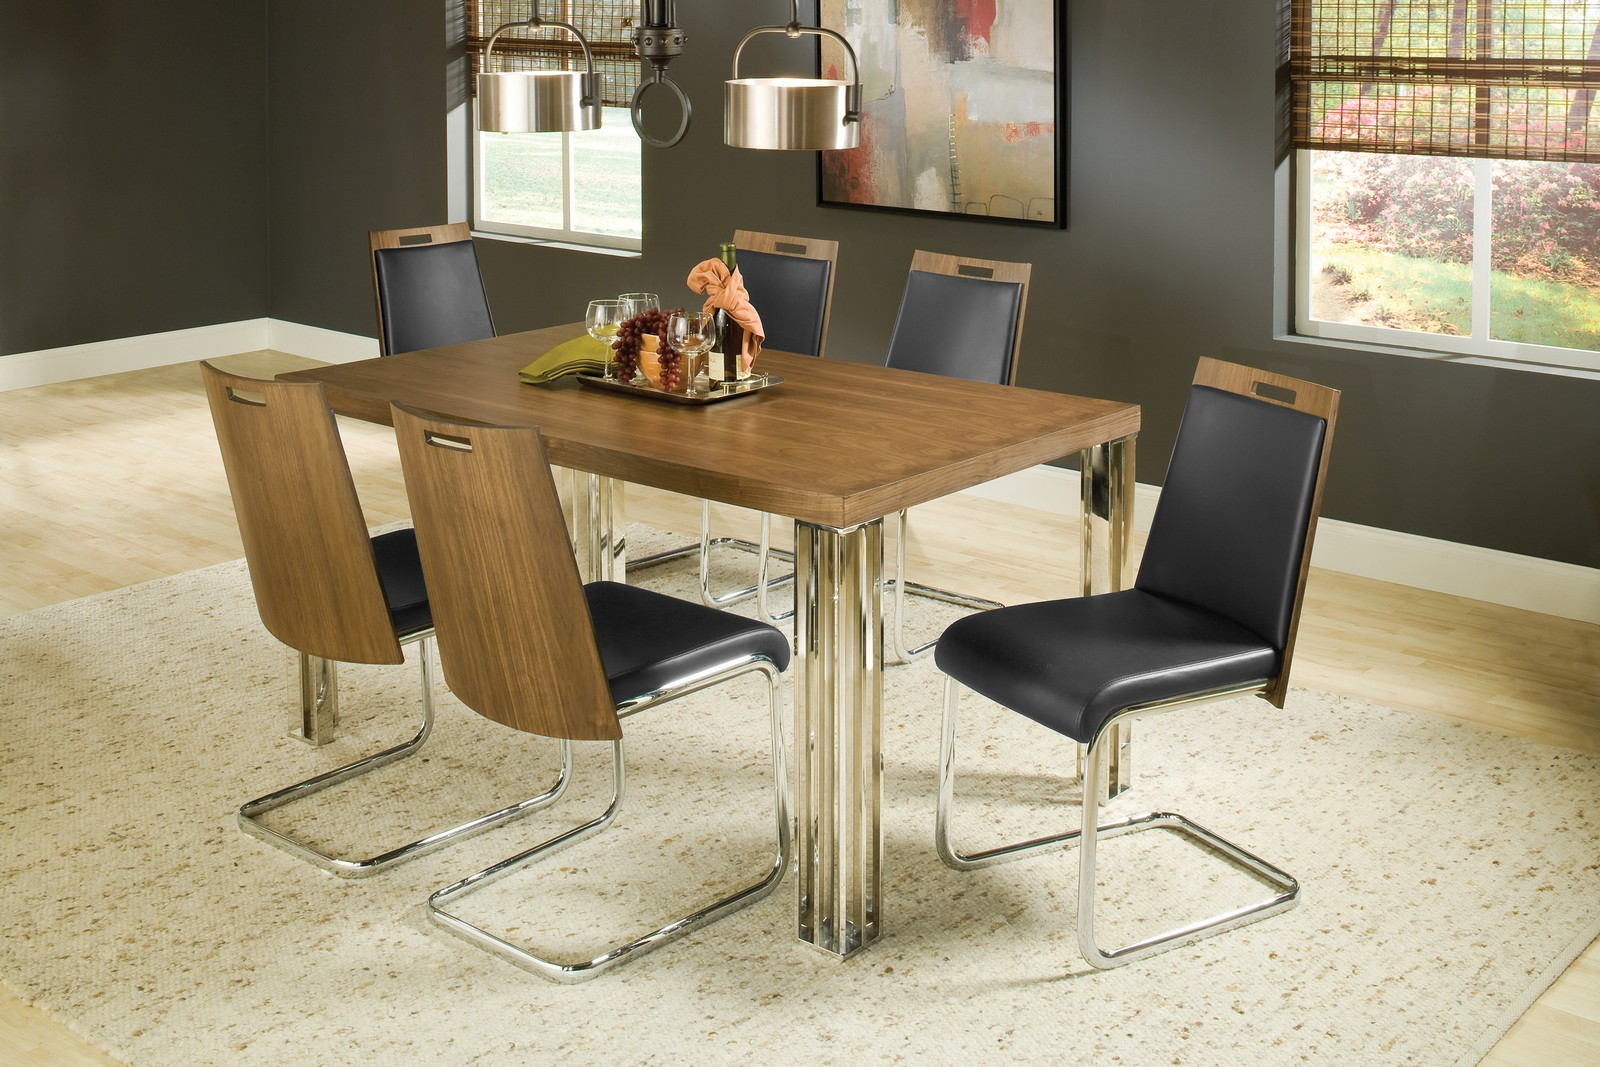 Hillsdale Trivoli 7 Pc Dining Set - Walnut/ Stainless Steel